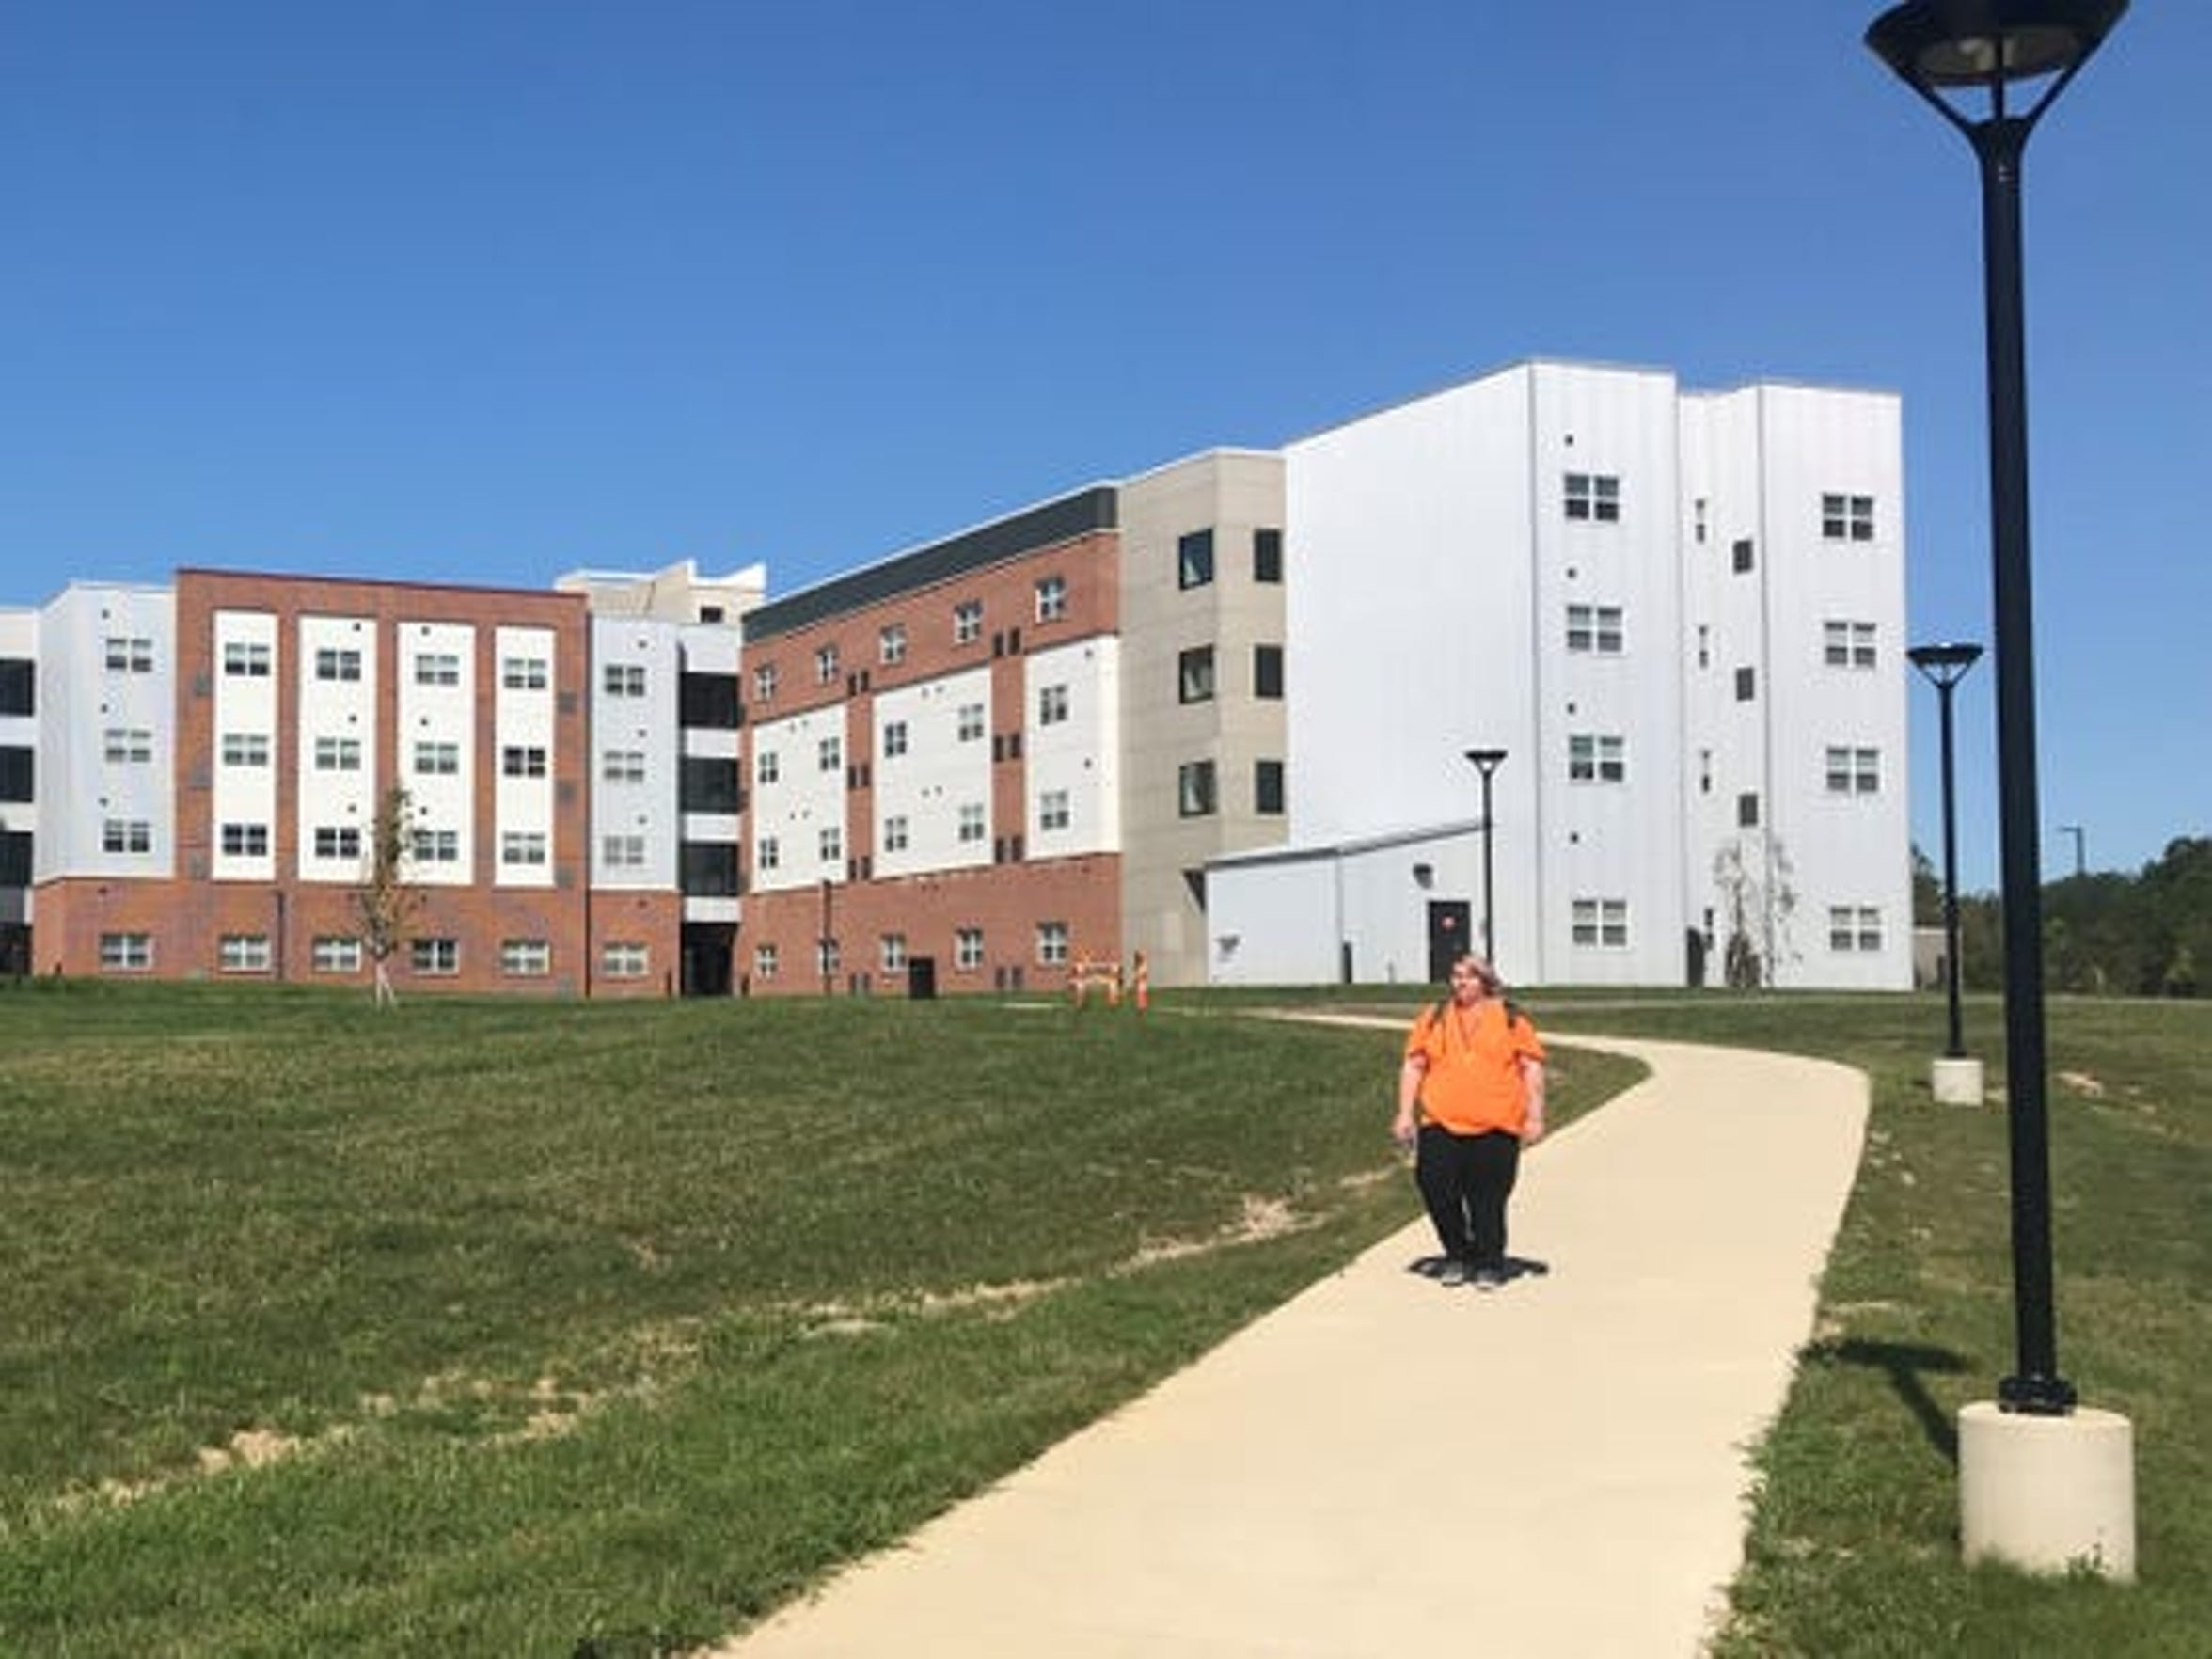 Andrew Nye, a hospitality major from Fostoria, walks from the Landings at Terra Village to a morning class at Terra State Community College. There are 157 people living in the student housing facility in the 2019 fall semester.